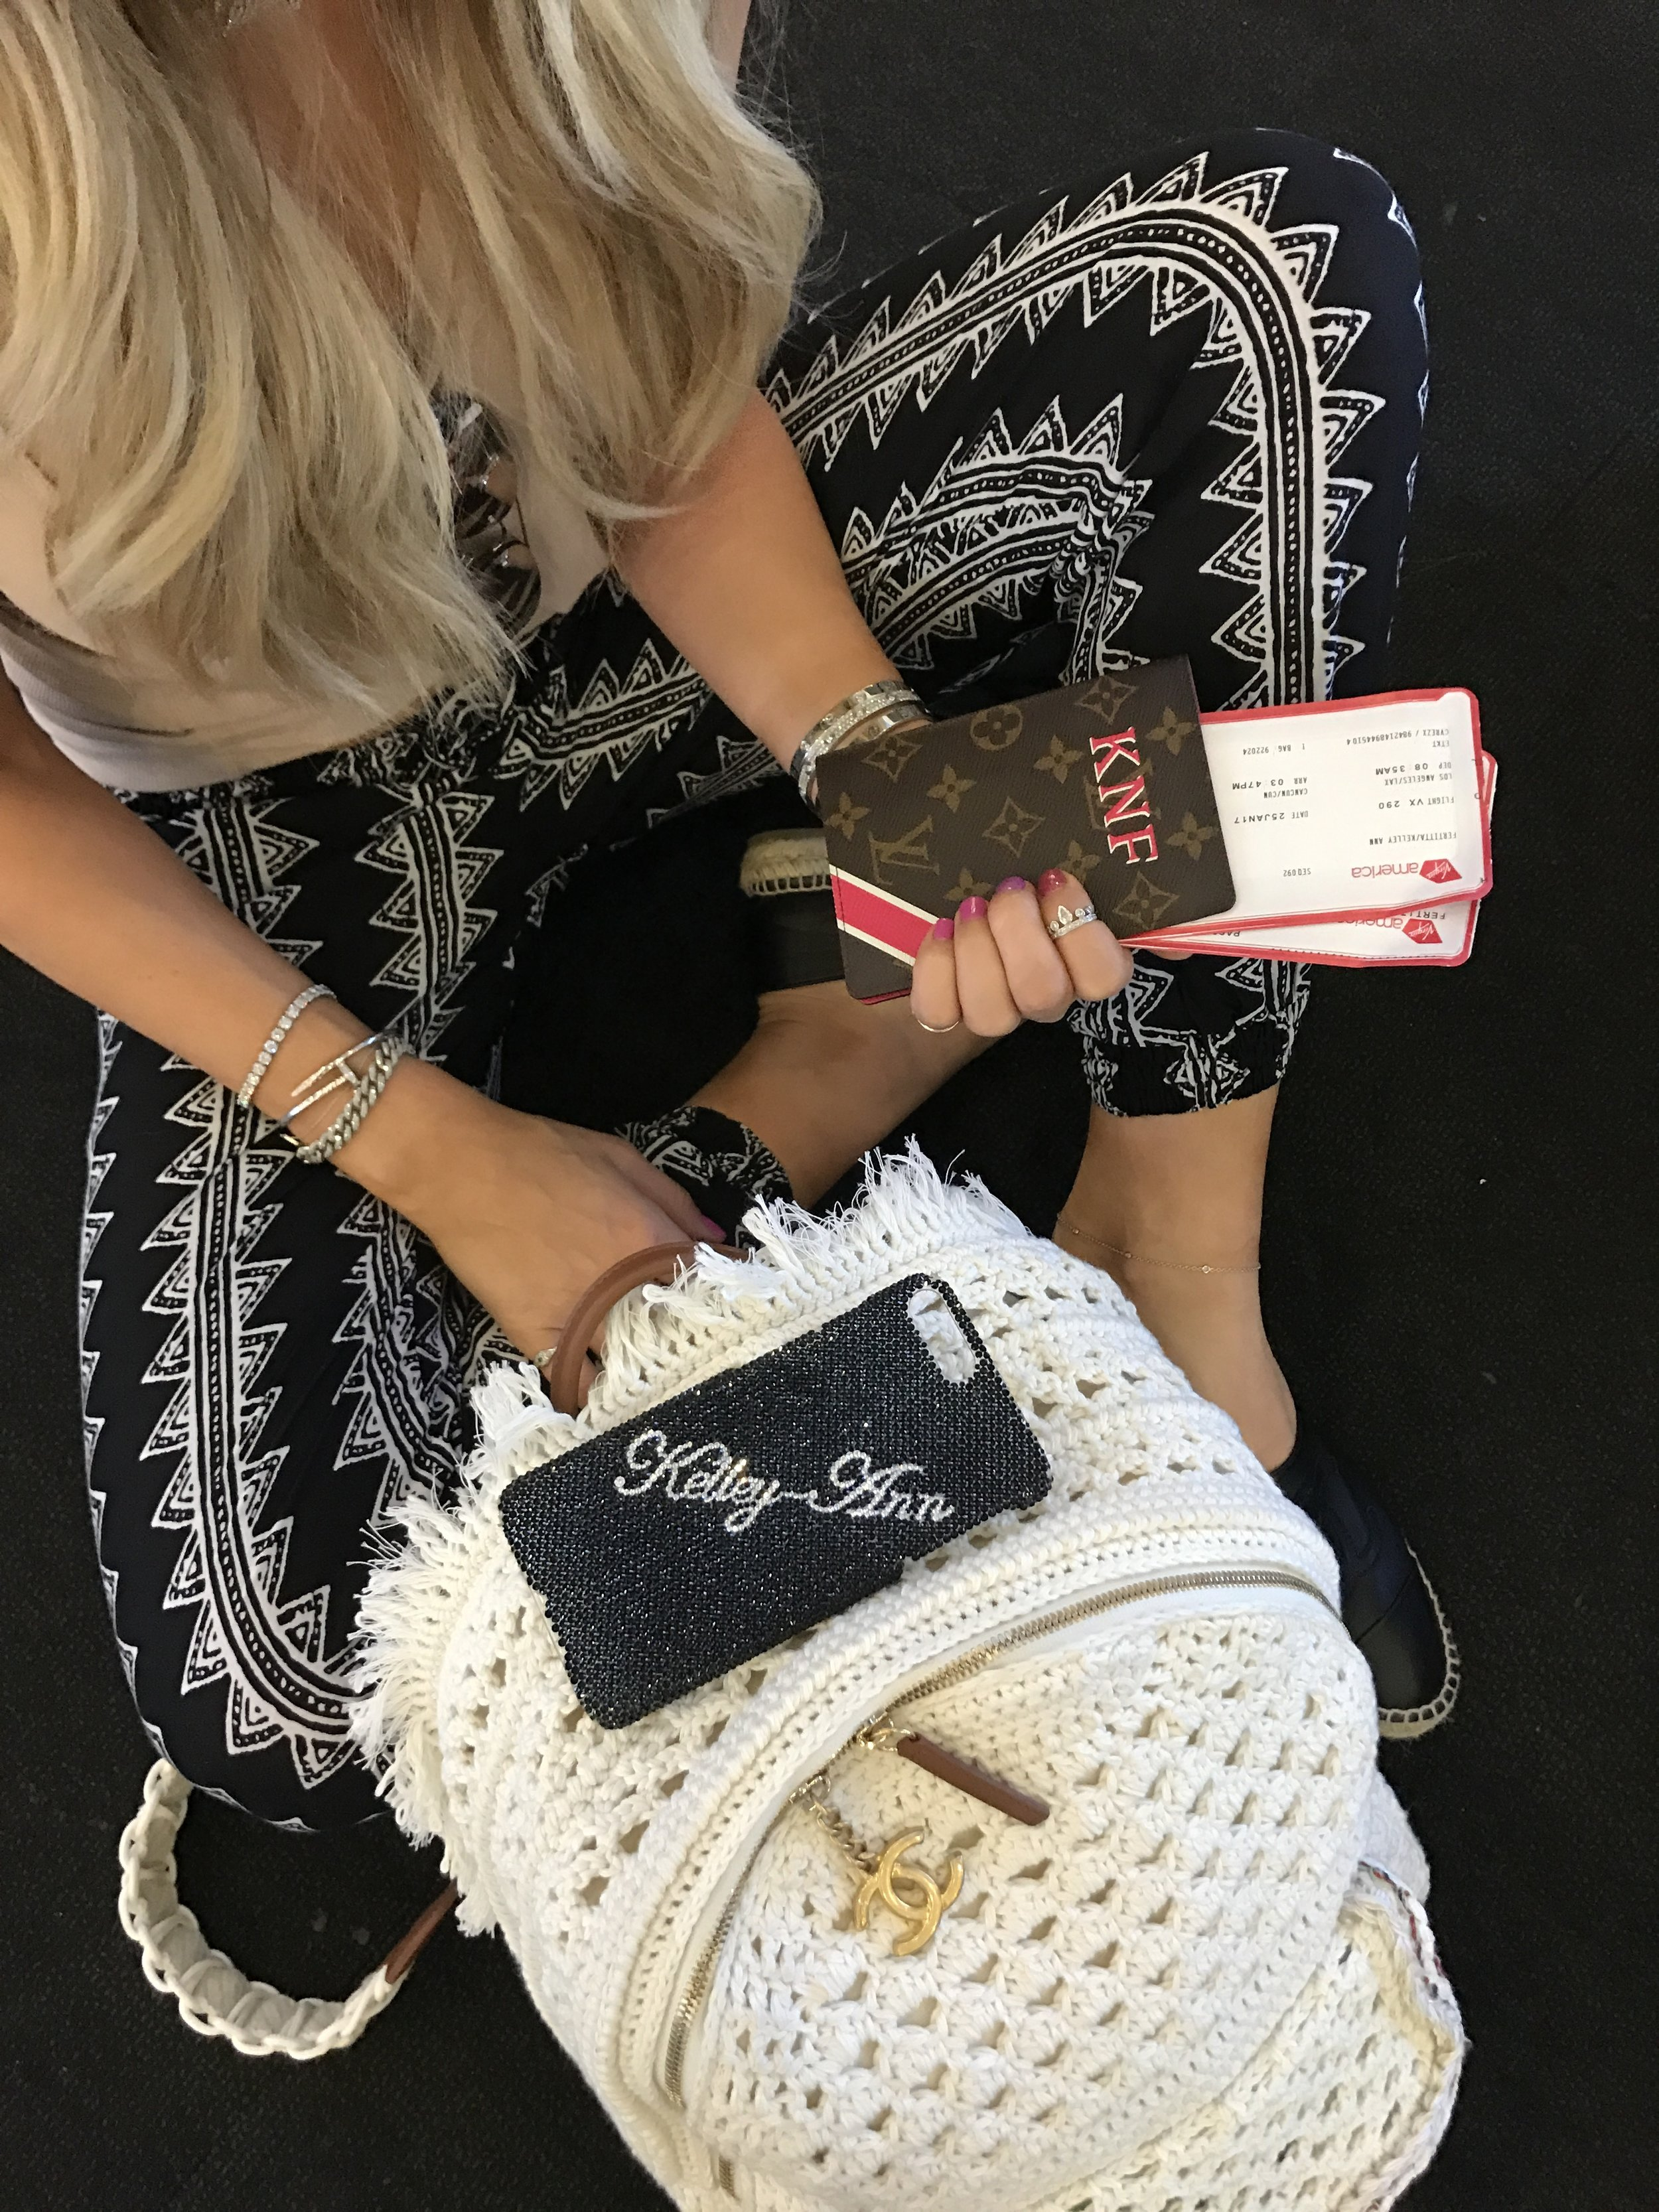 Kelley Ann with LV passport ready to travel